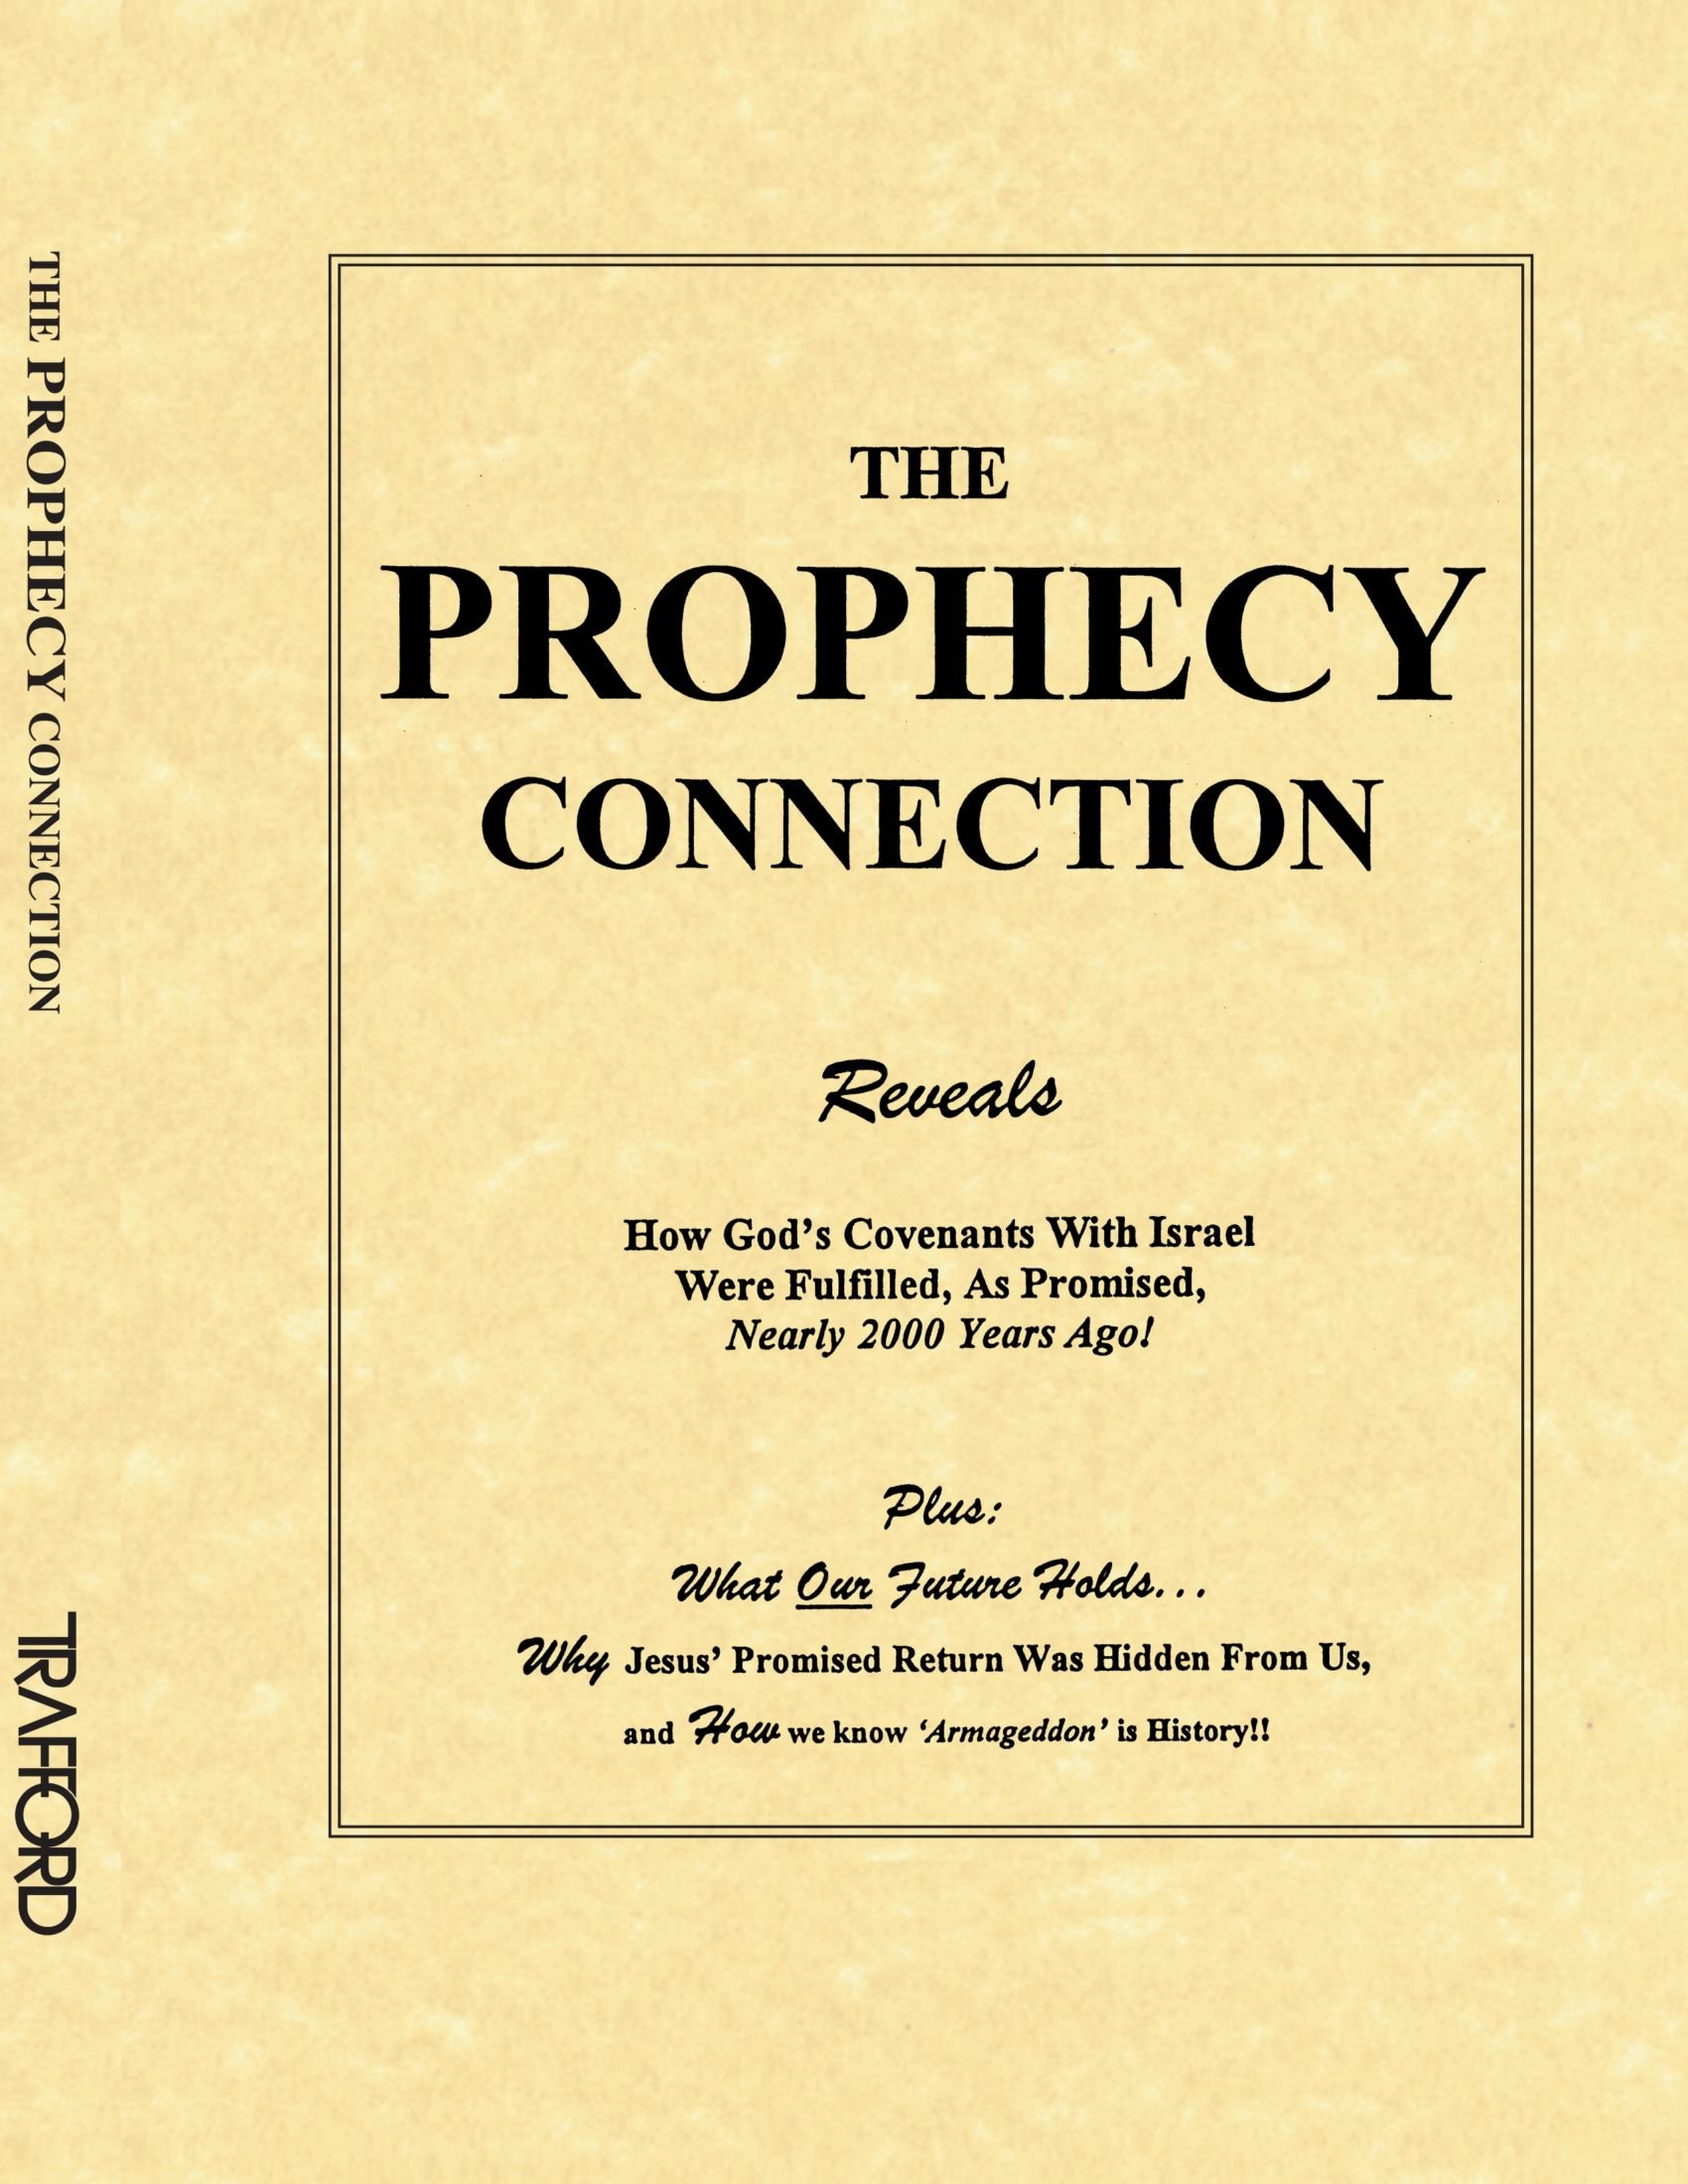 The Prophecy Connection: Margaret Canmore: 9781553698173: Amazon.com: Books